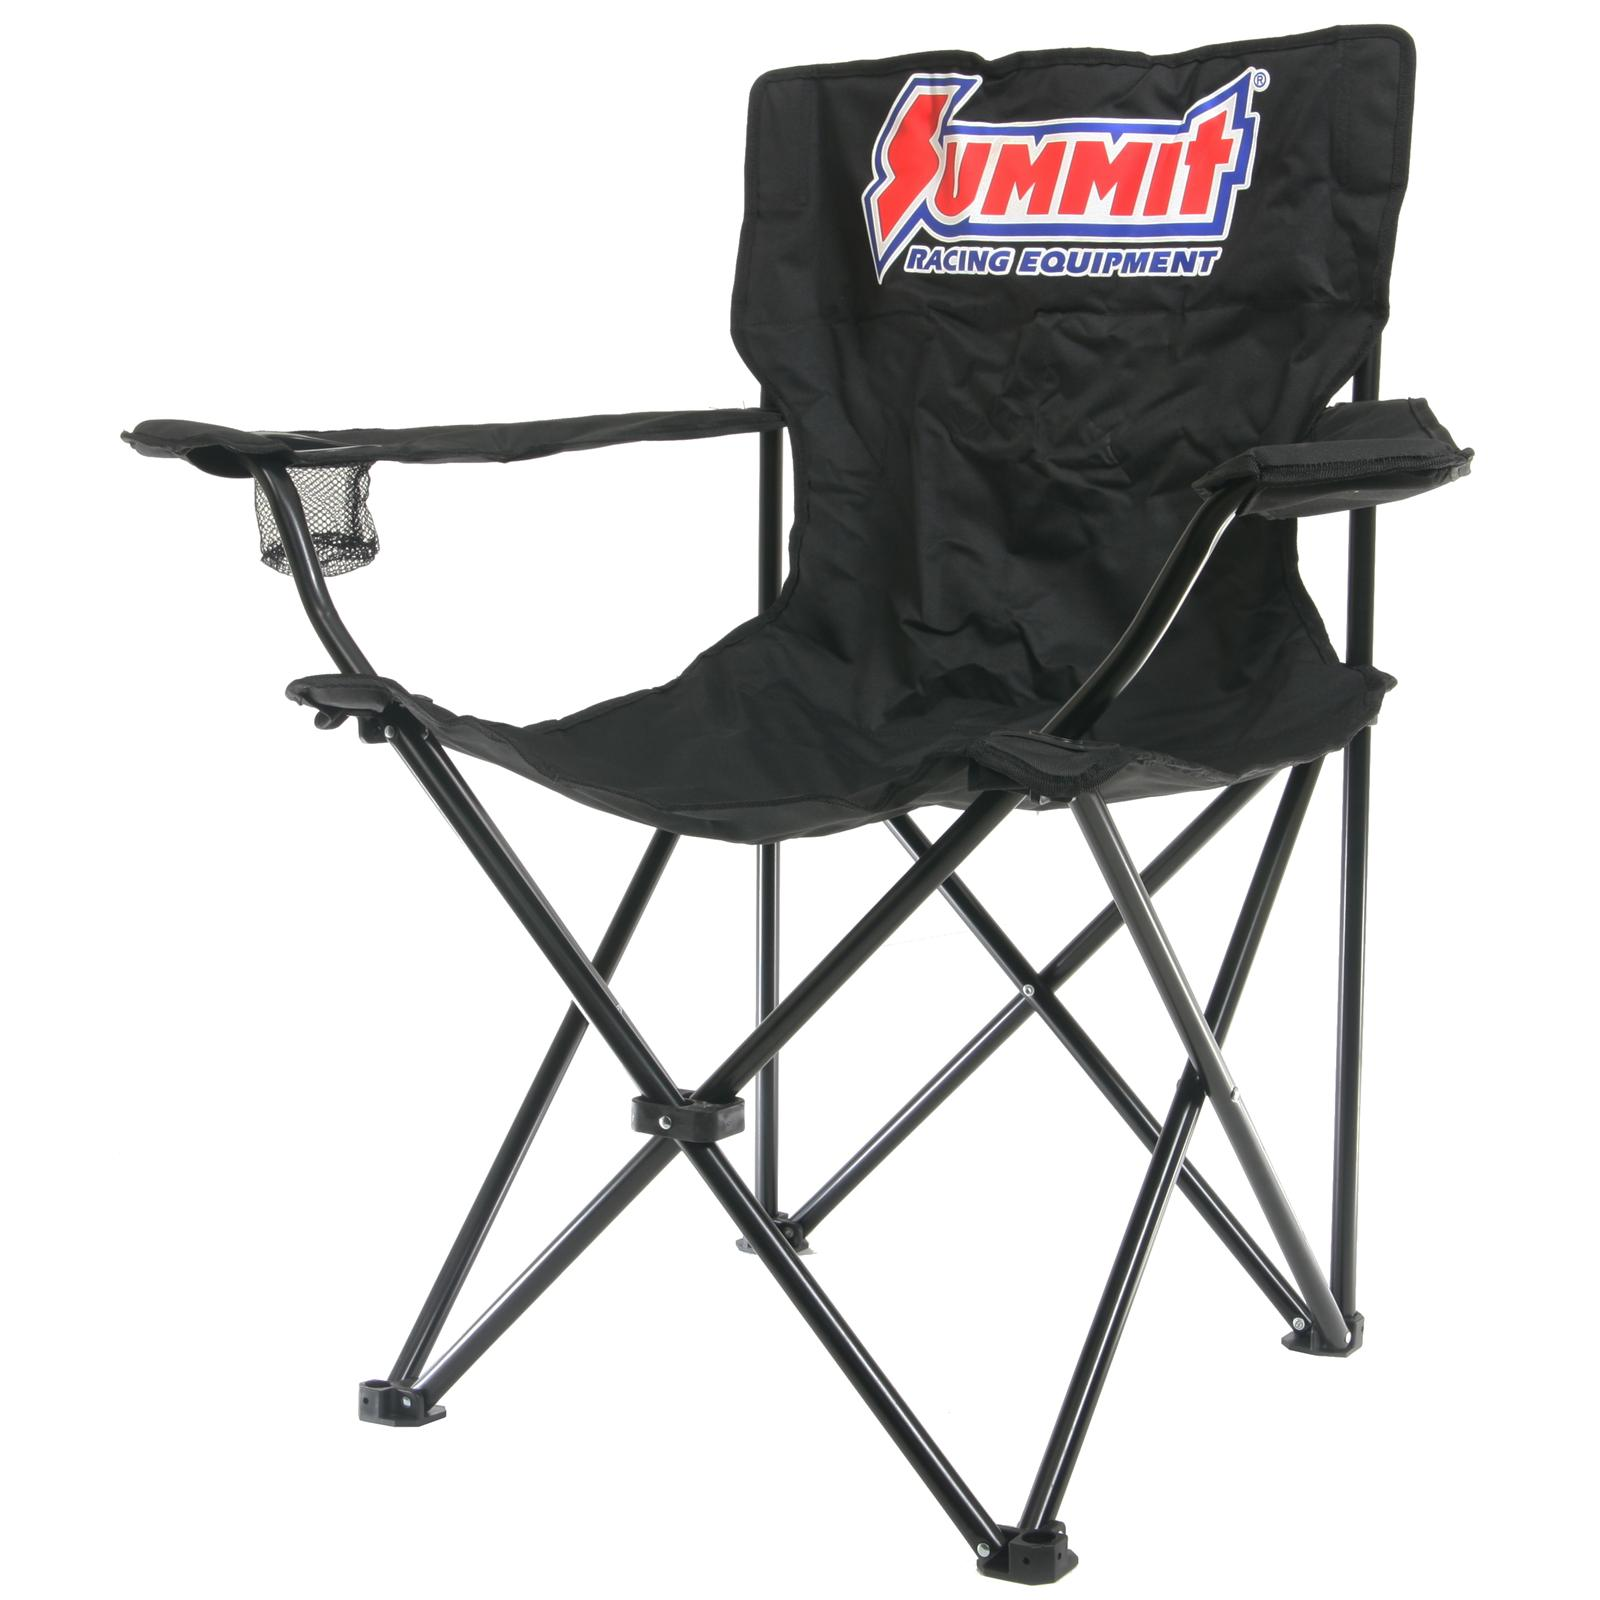 Summit Racing Folding Chairs SUM P1030 Free Shipping on Orders